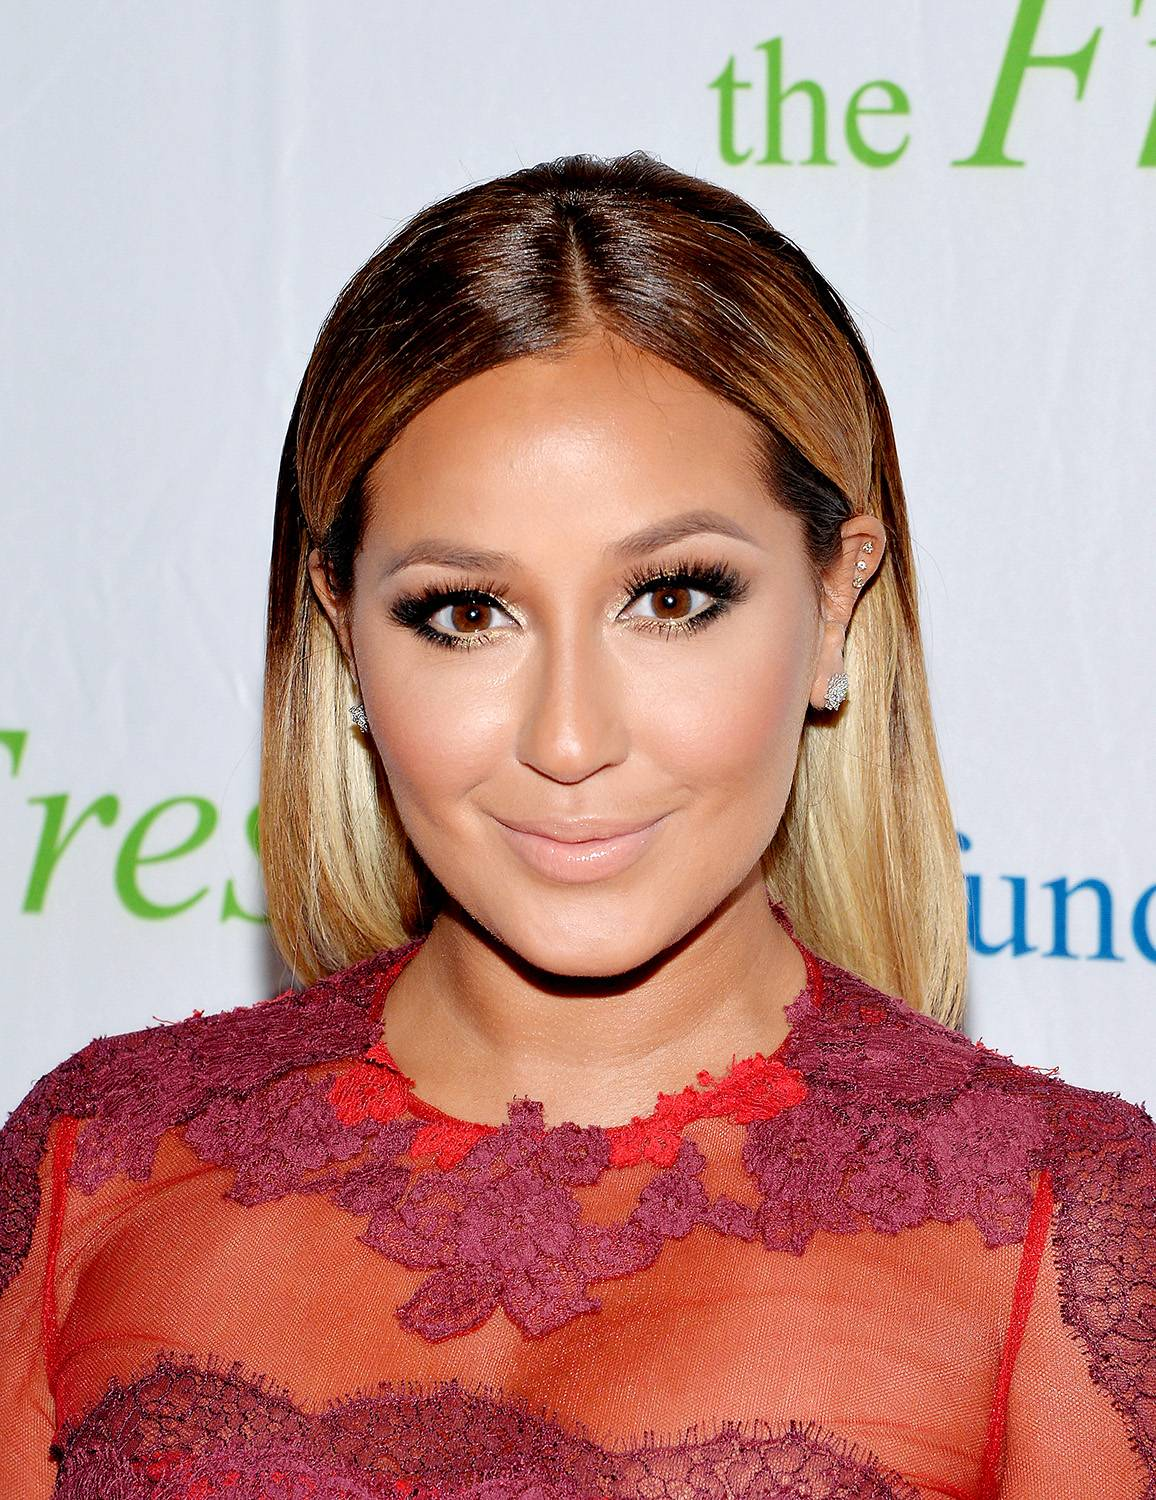 Nail'd It!   - When it comes to nailing it, this NYC Latina's got what it takes! Singer, songwriter, dancer, actress and now talk show host Adrienne Bailon admits she's all about adorning her nails and her hands and is even scheduled to host a nail art competition on Oxygen this fall!(Photo: Mike Coppola/Getty Images)